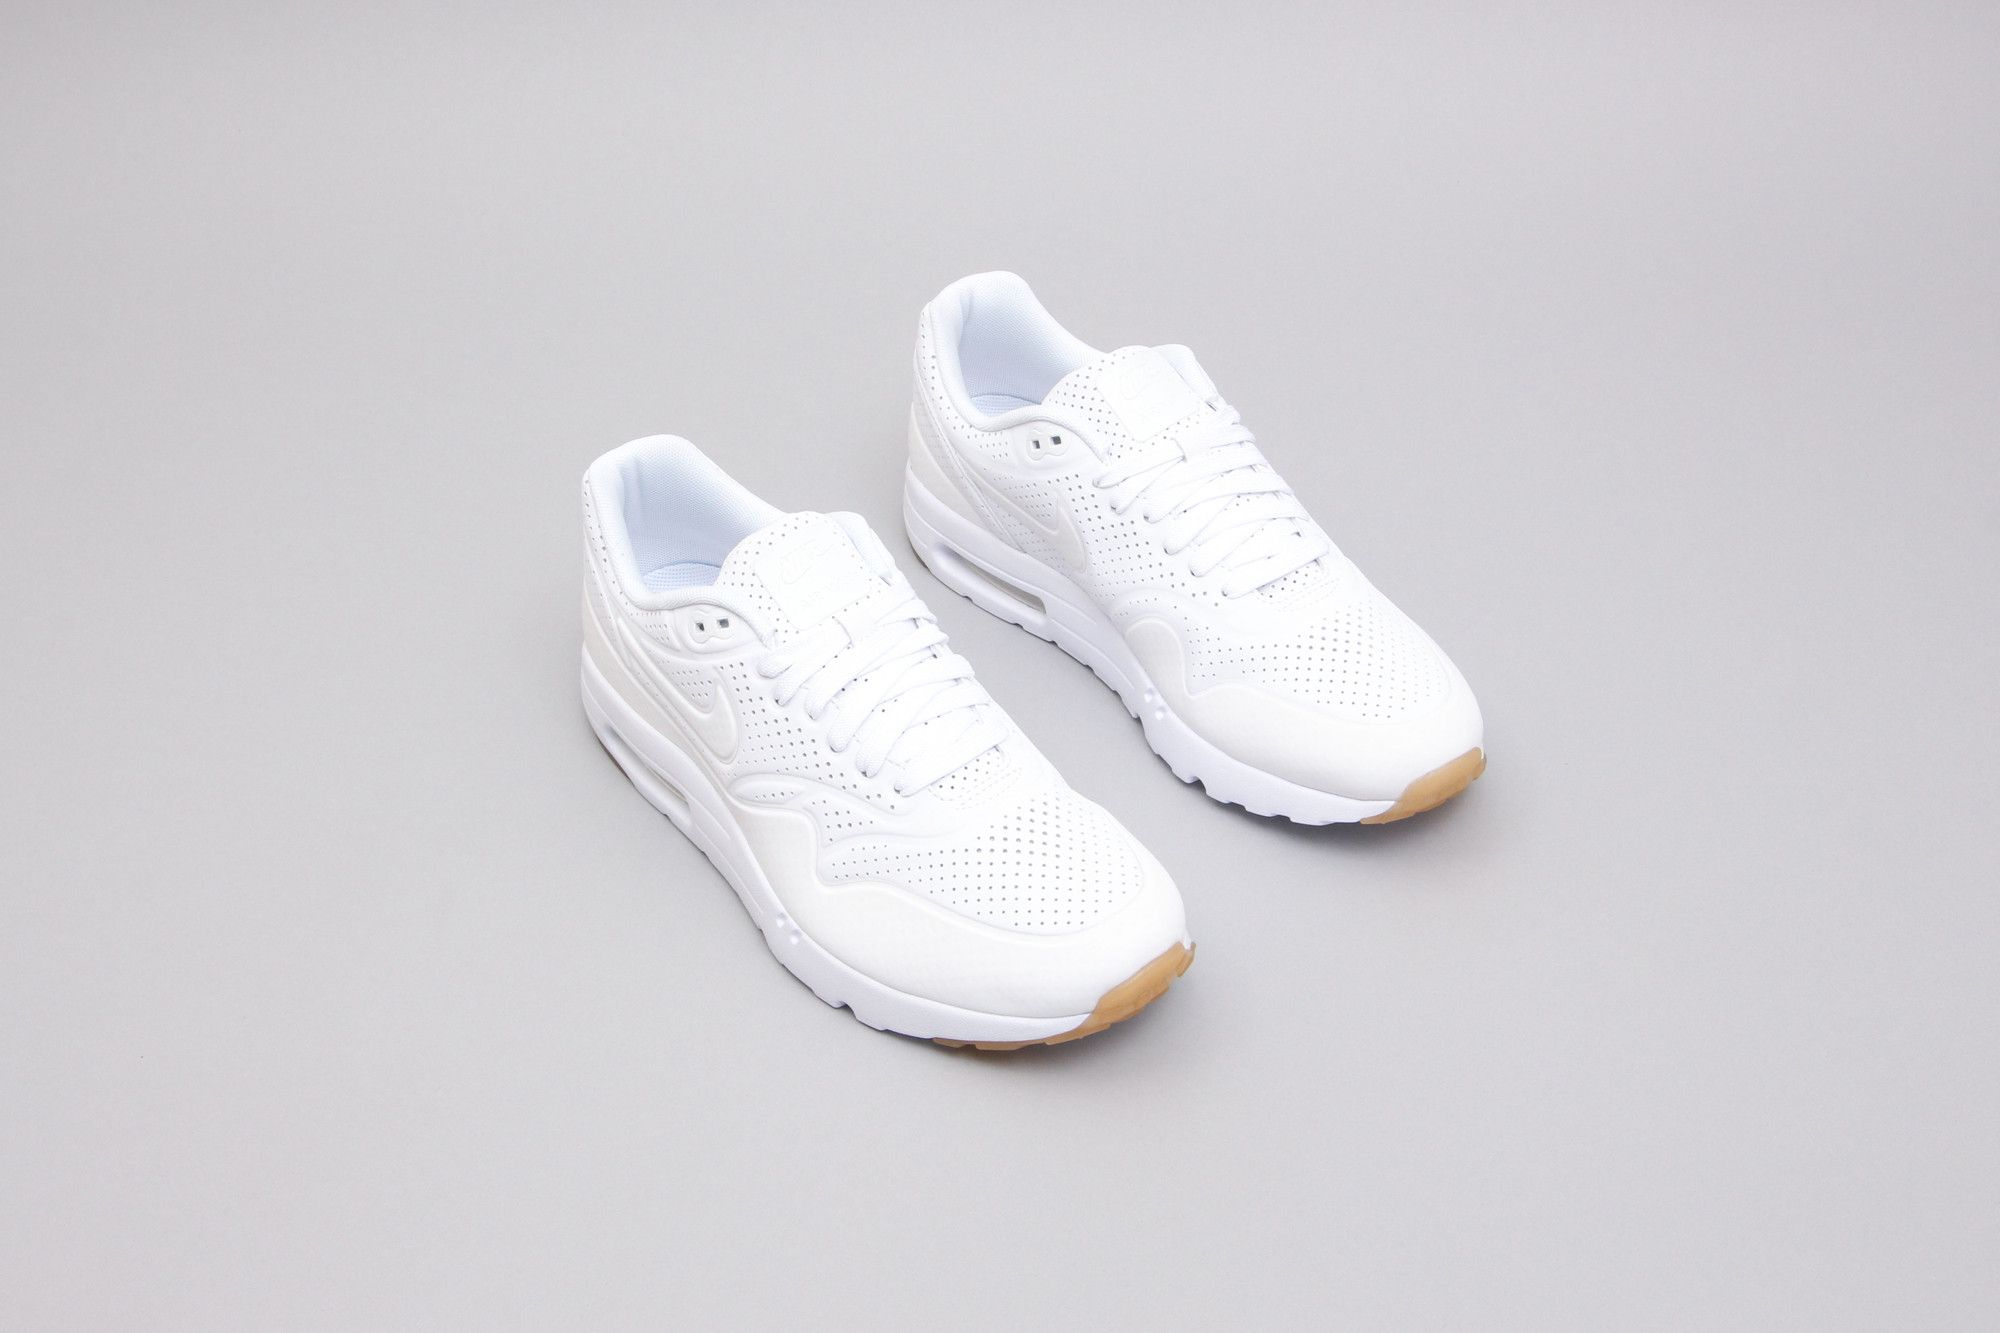 the latest 7da74 9f476 Nike Air Max 1 Ultra Moire - 705297 111